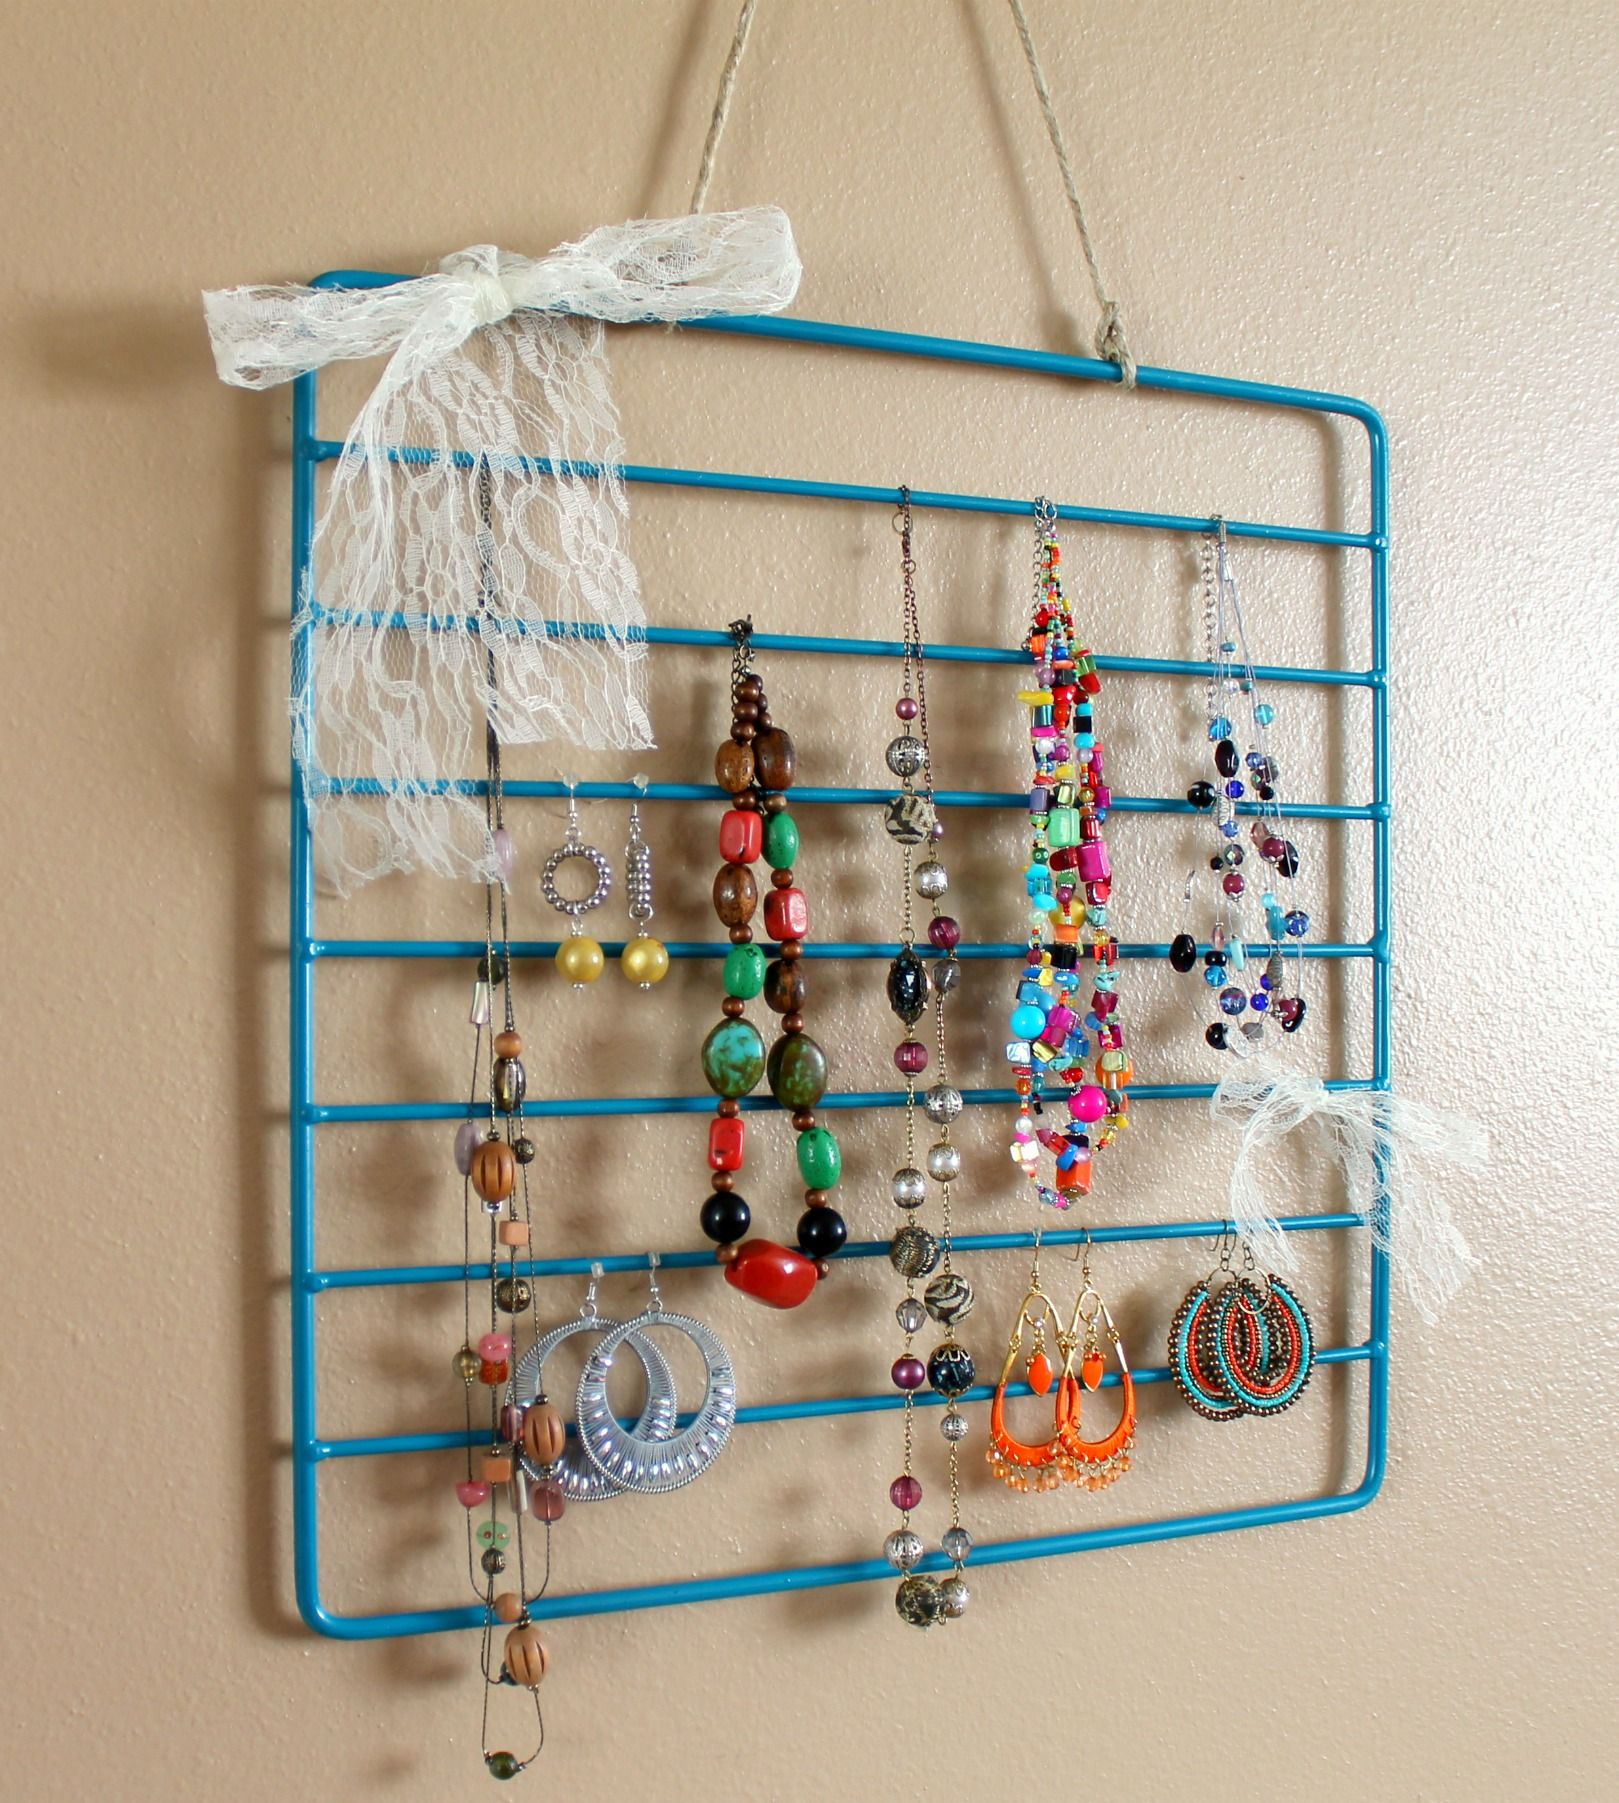 DIY Jewelry Organization Roundup Oven Jewellery holder and Hang